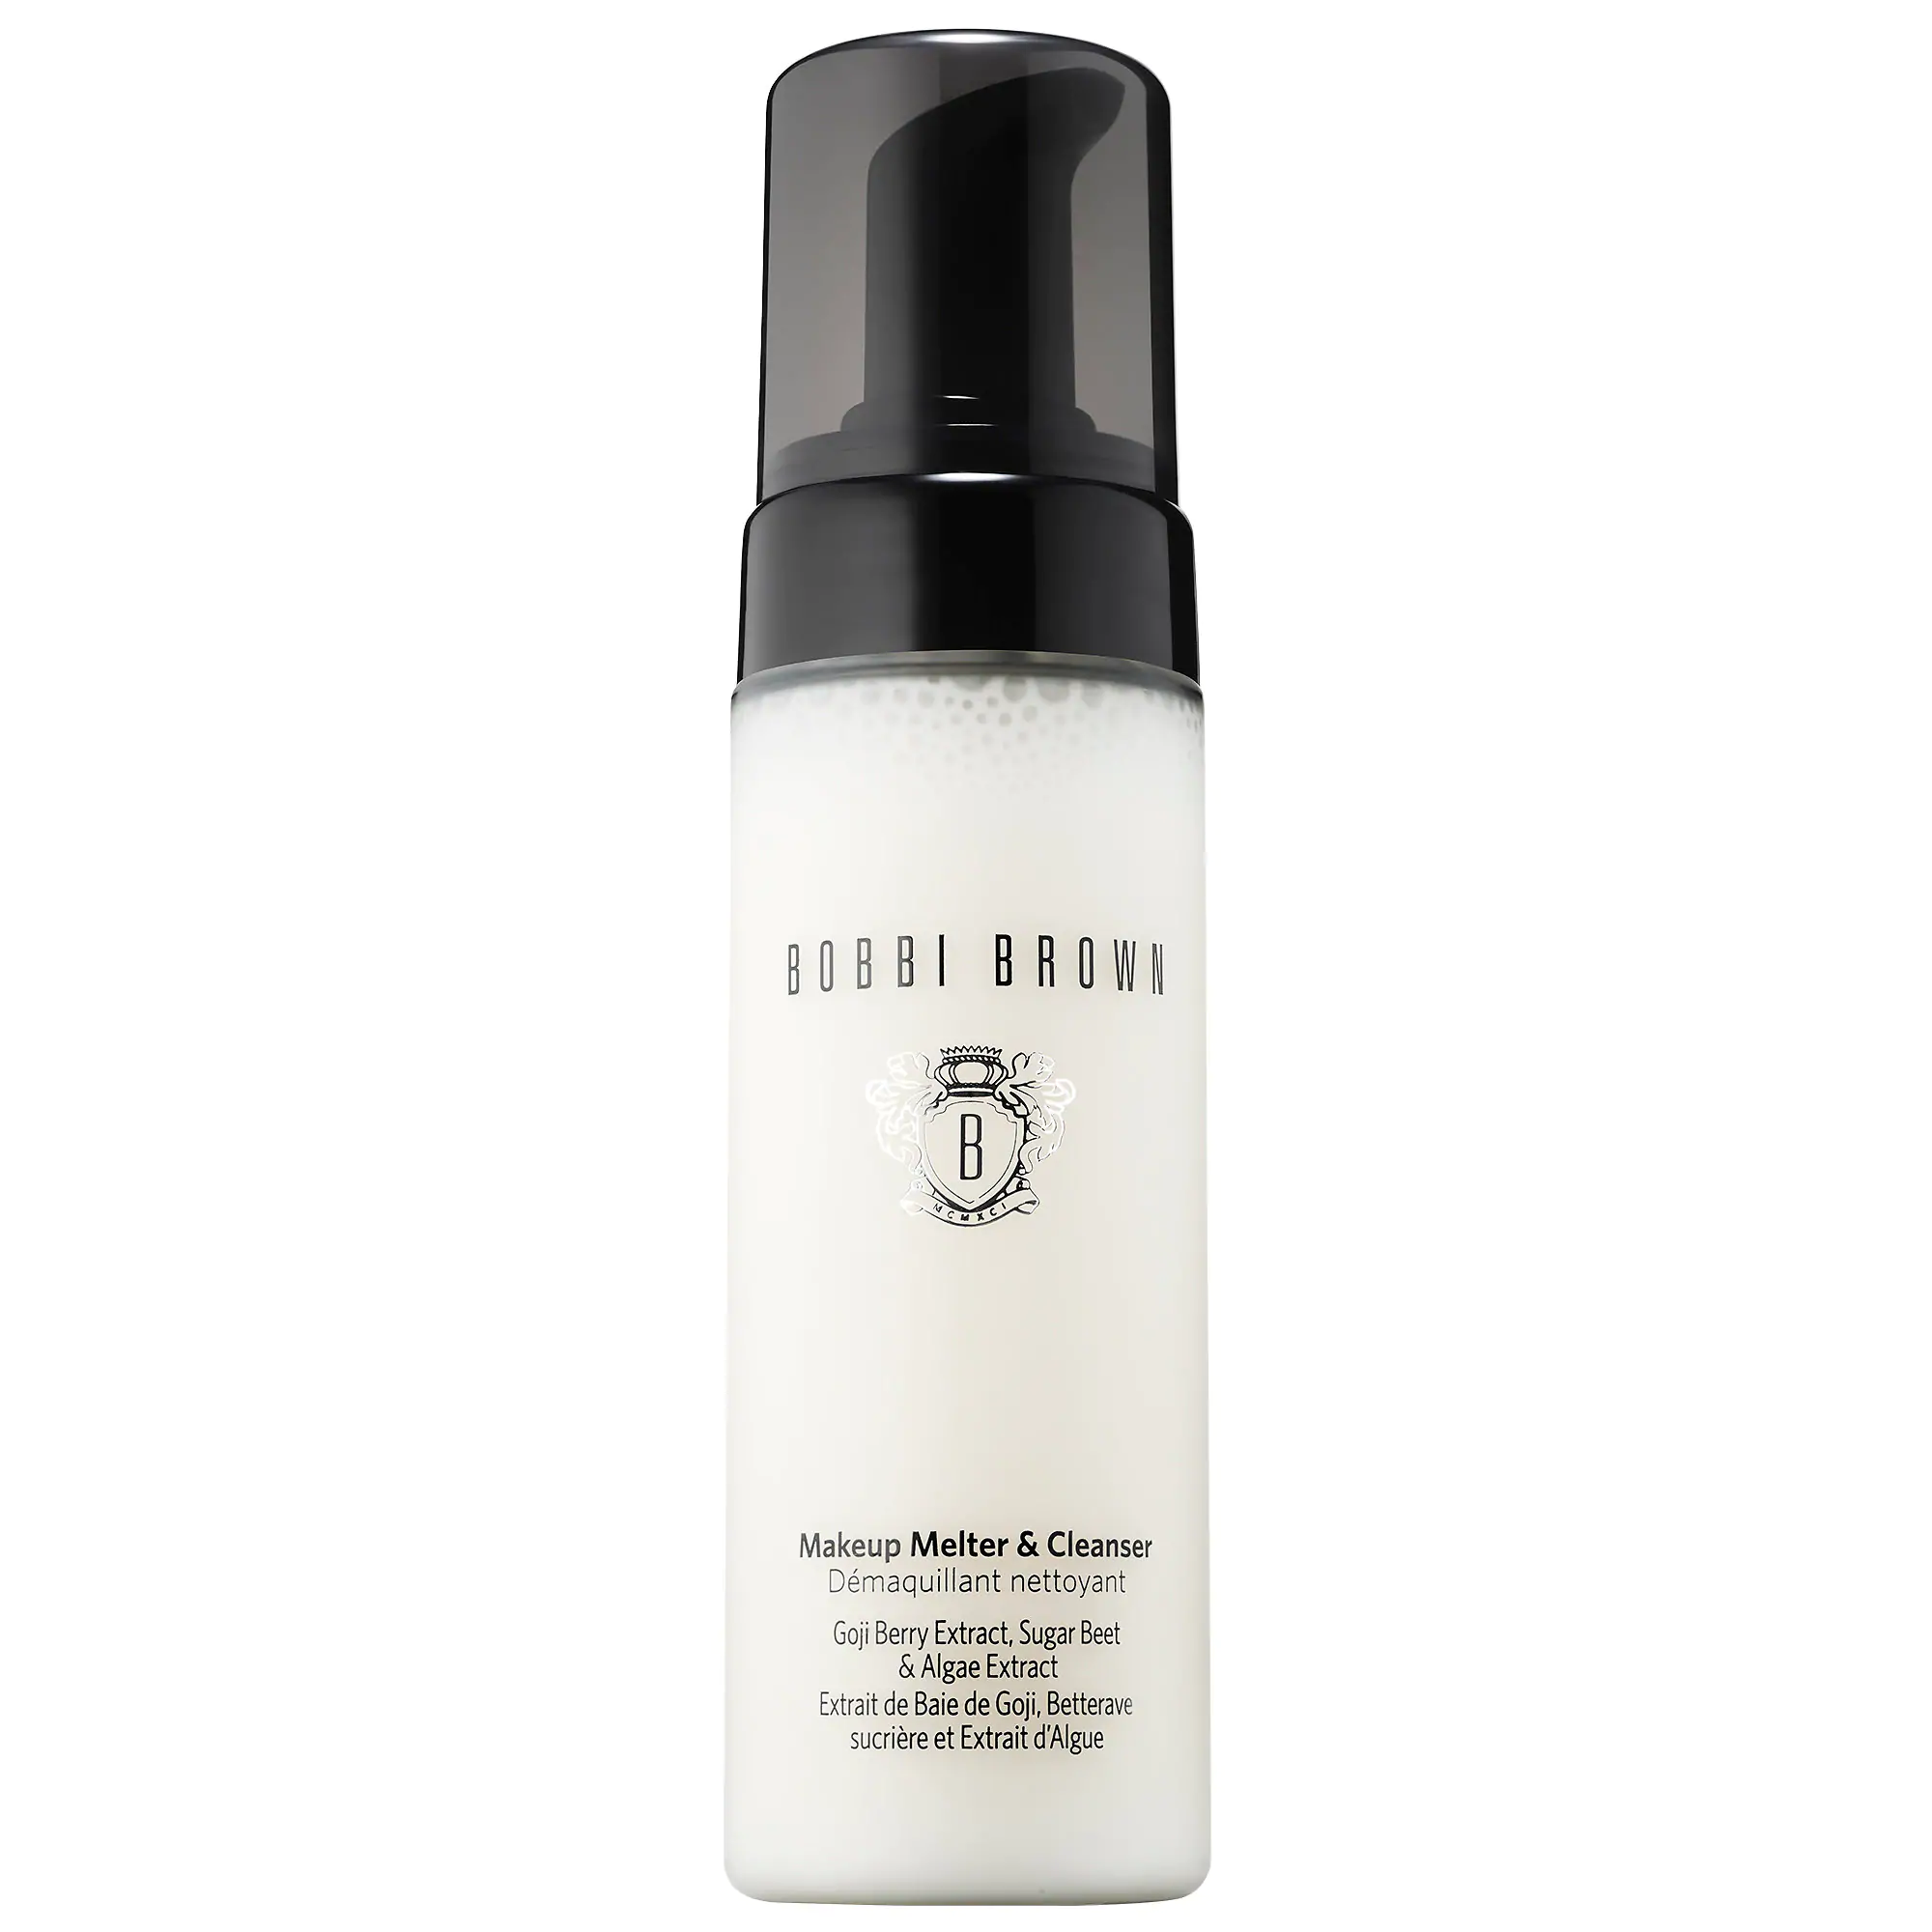 Bobbi Brown Makeup Melter & Cleanser